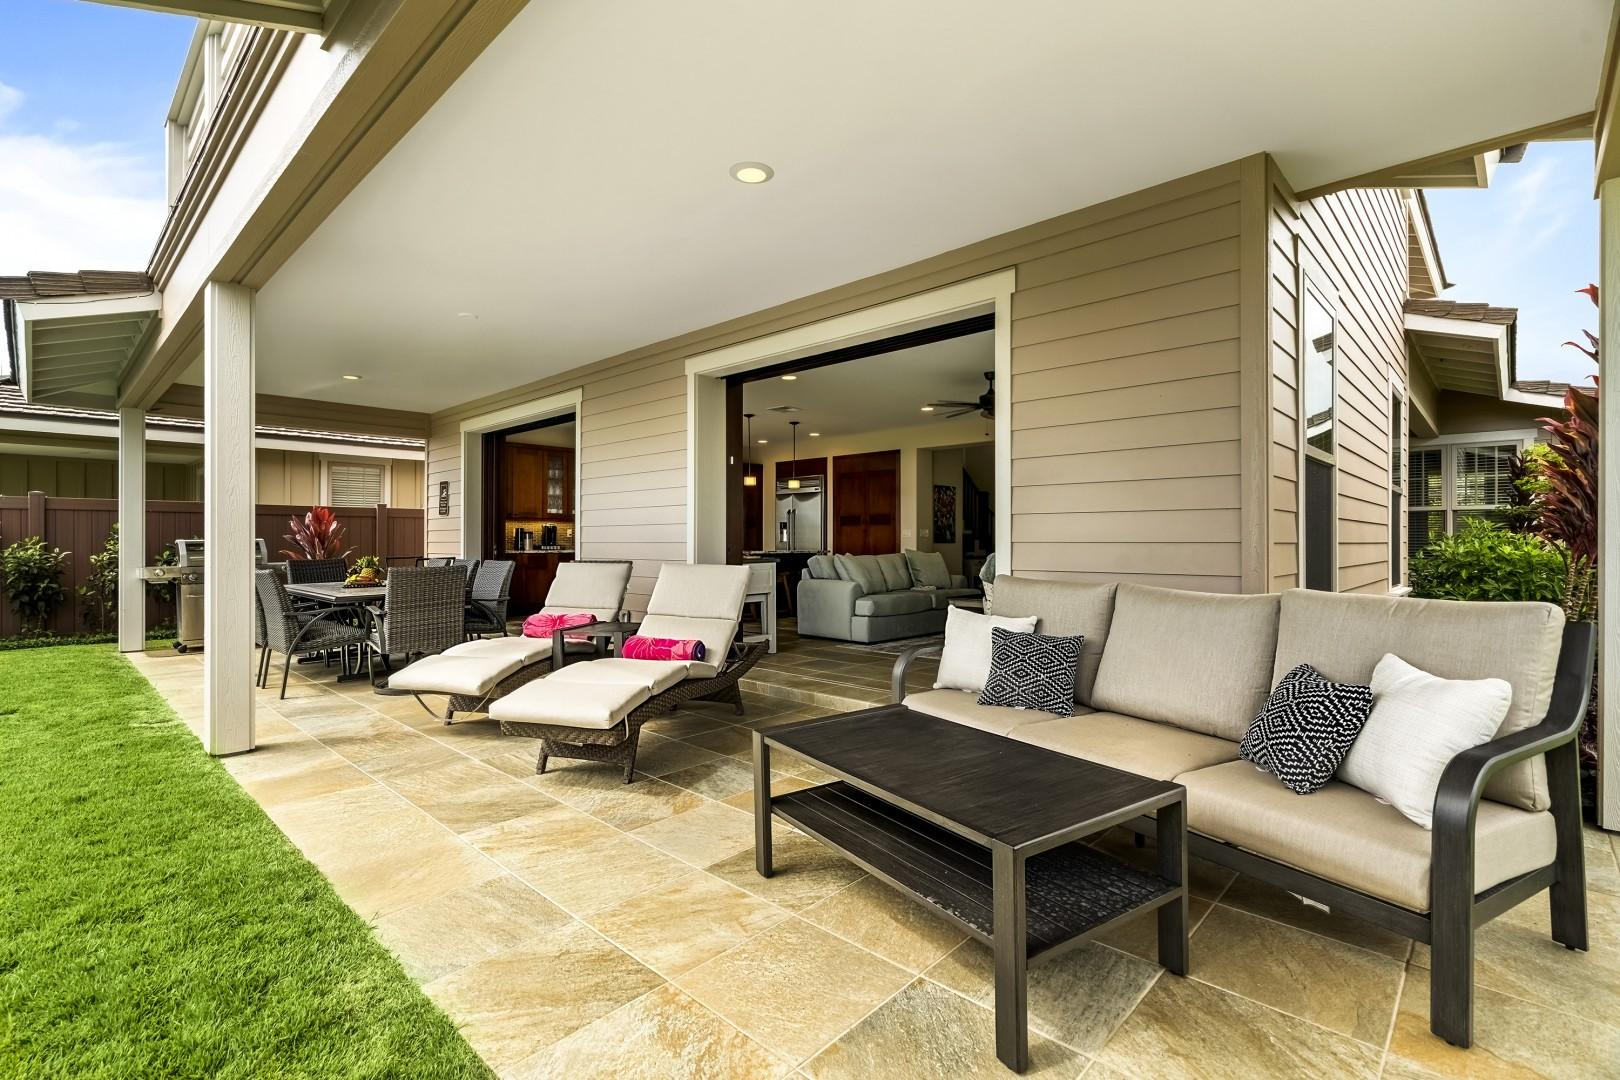 Outdoor seating options for guests to choose from